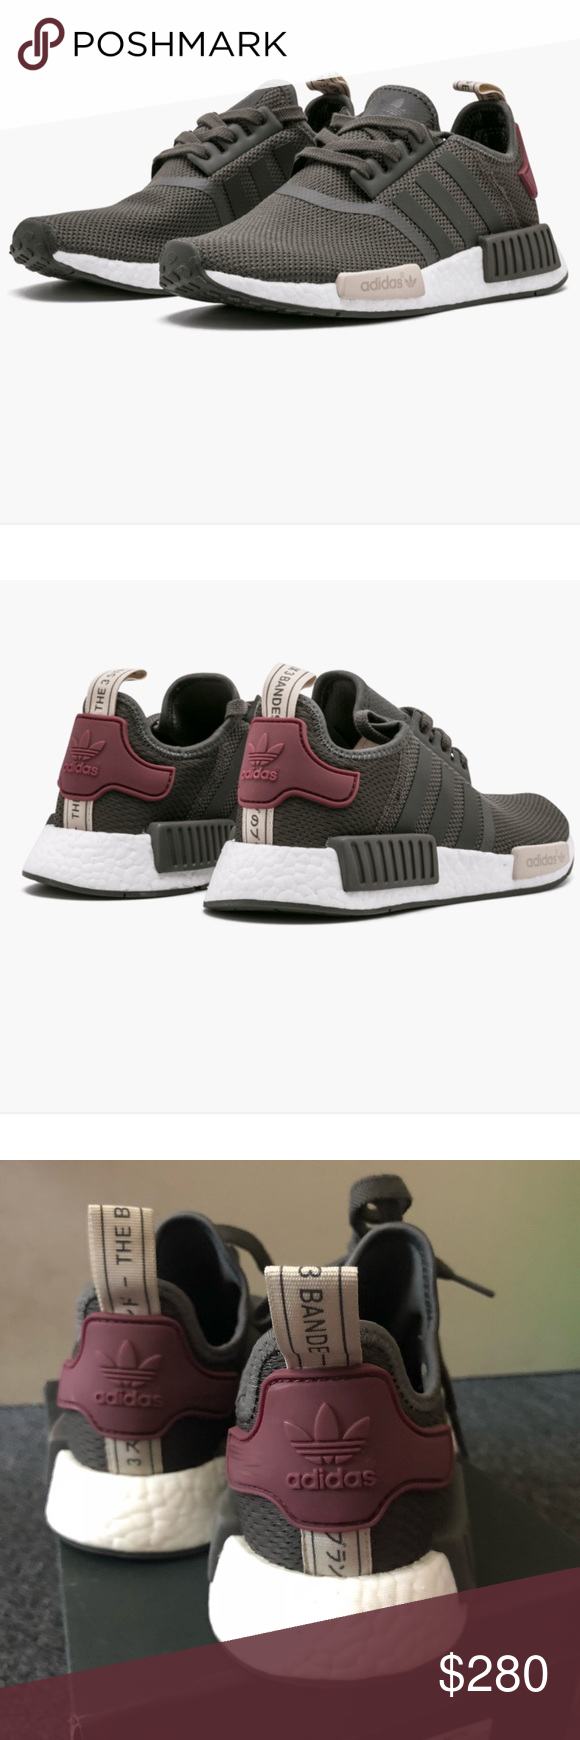 81b84de6 Adidas NMD_R1 Olive green/maroon Purchased from StockX and 100% authentic!  Used about